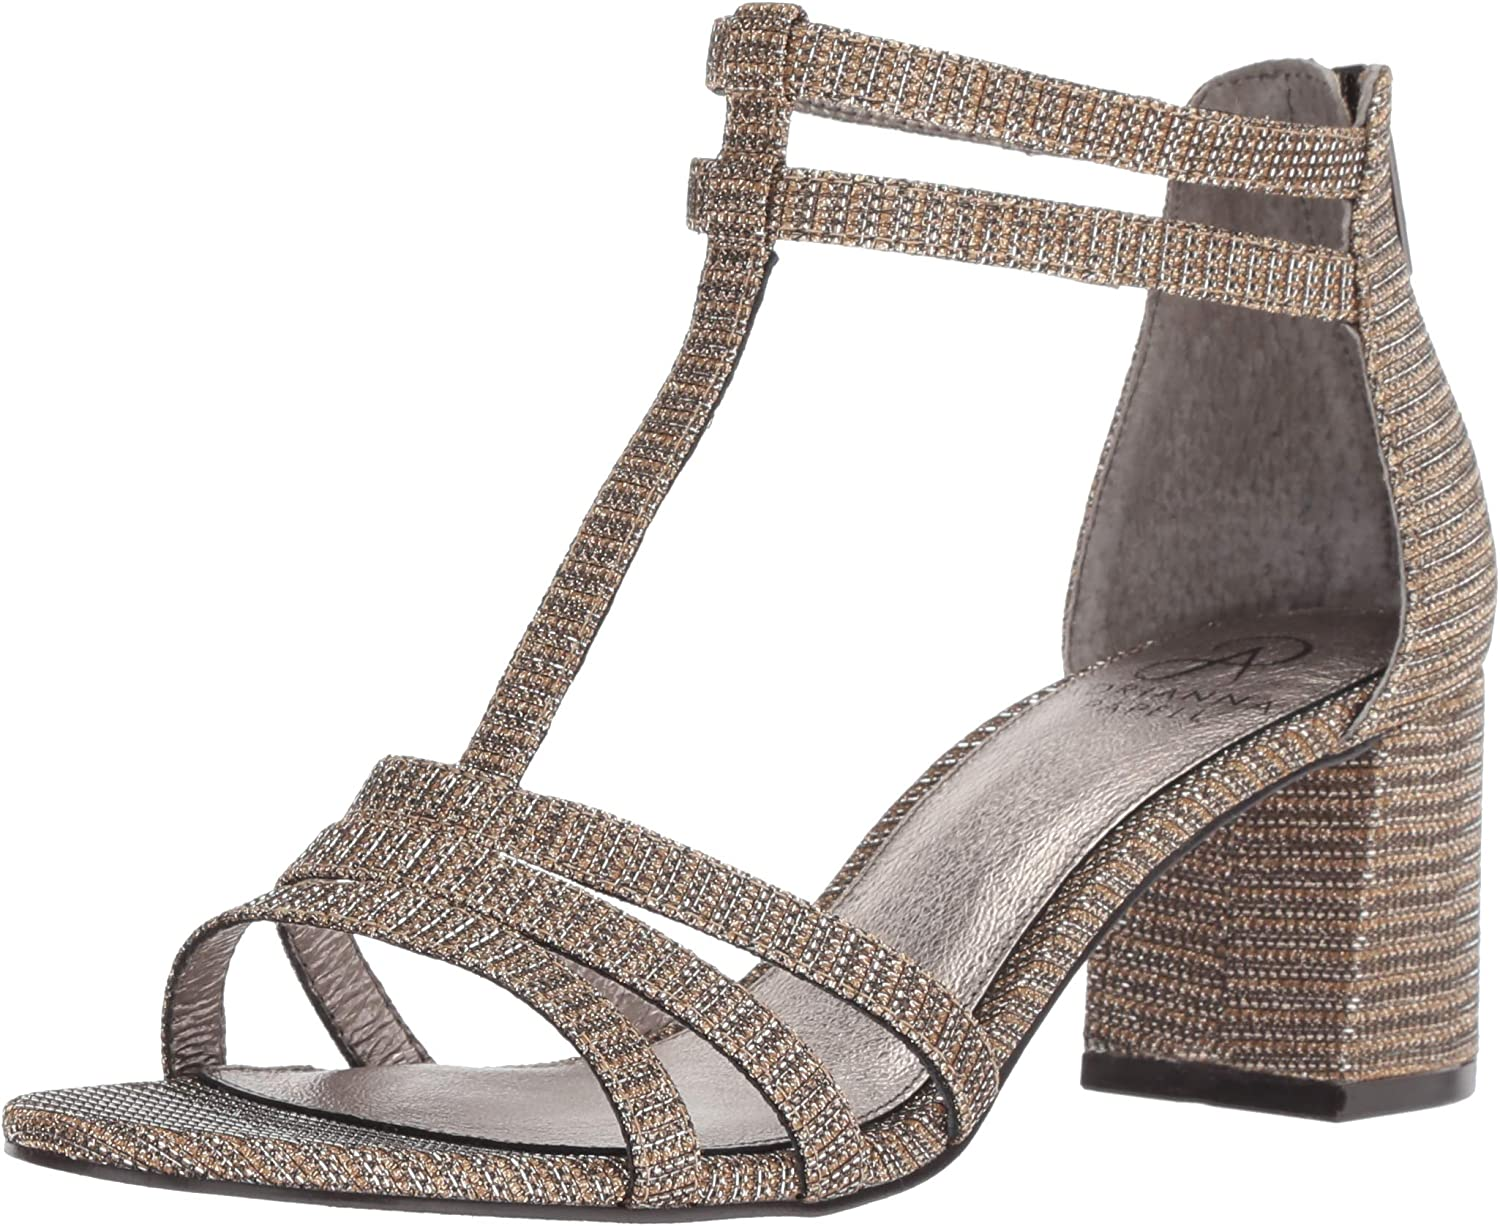 Adrianna Papell Womens Anella Sandal